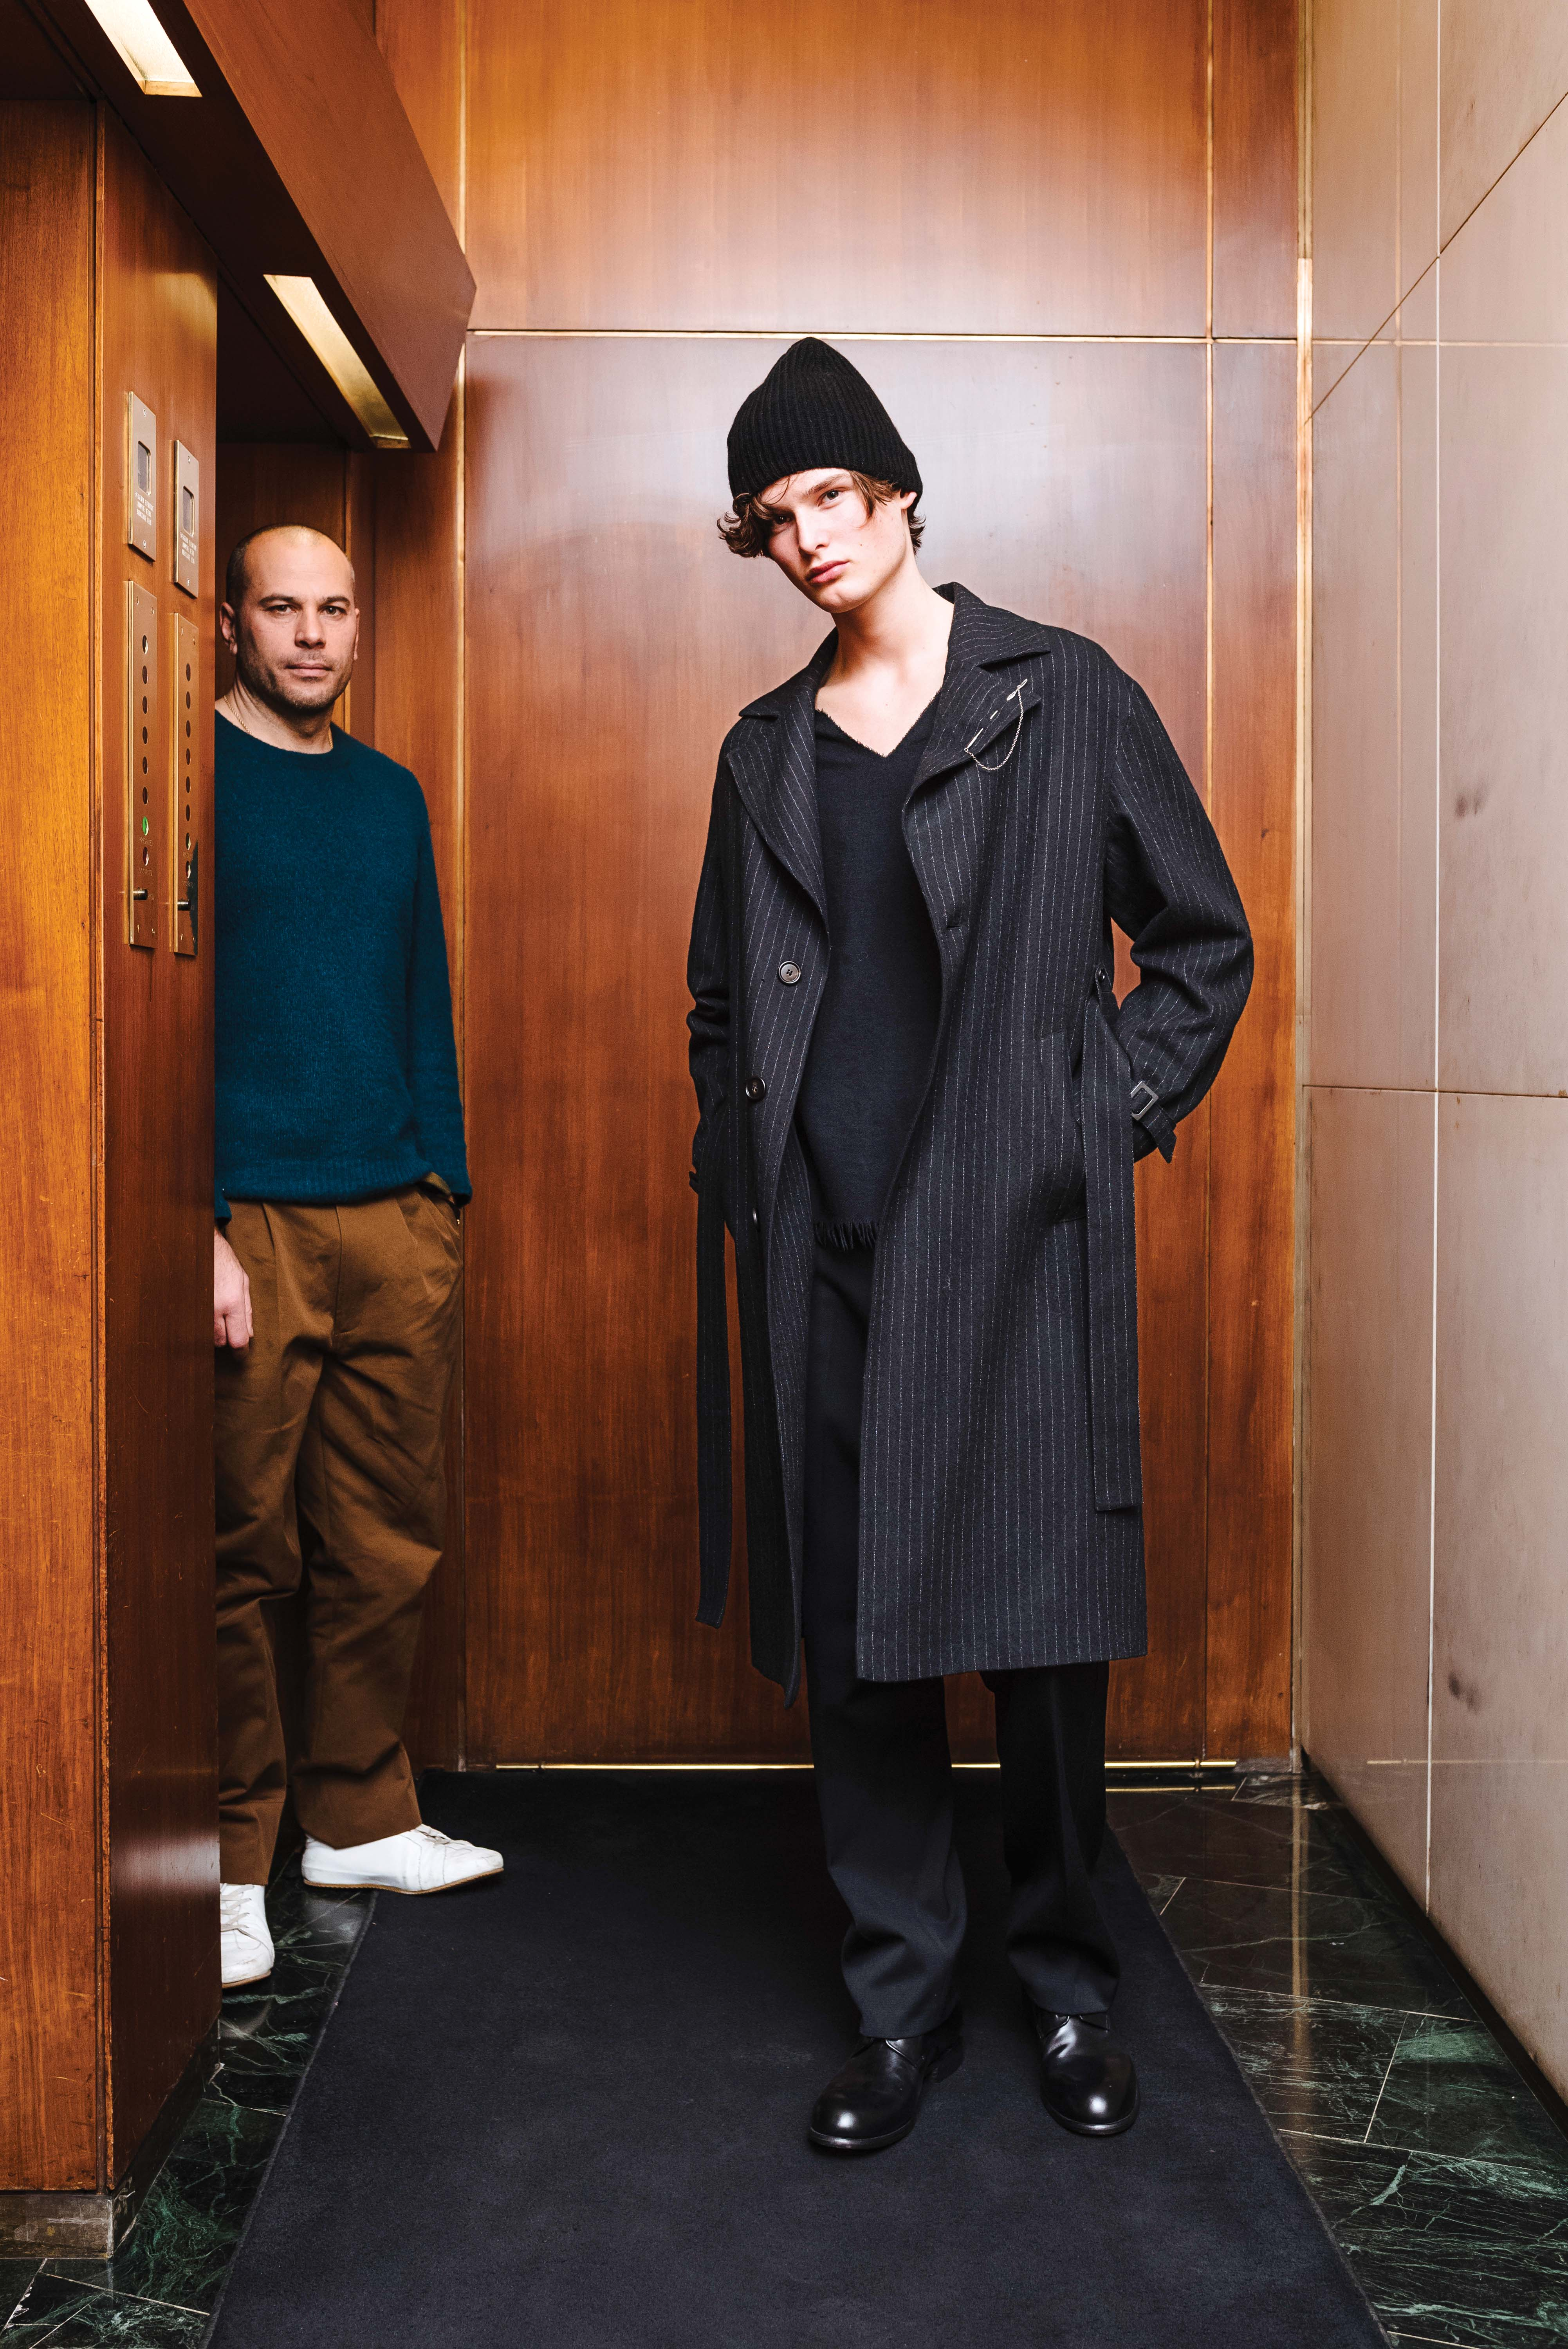 Federico Curradi uses eco-friendly materials in his collection.